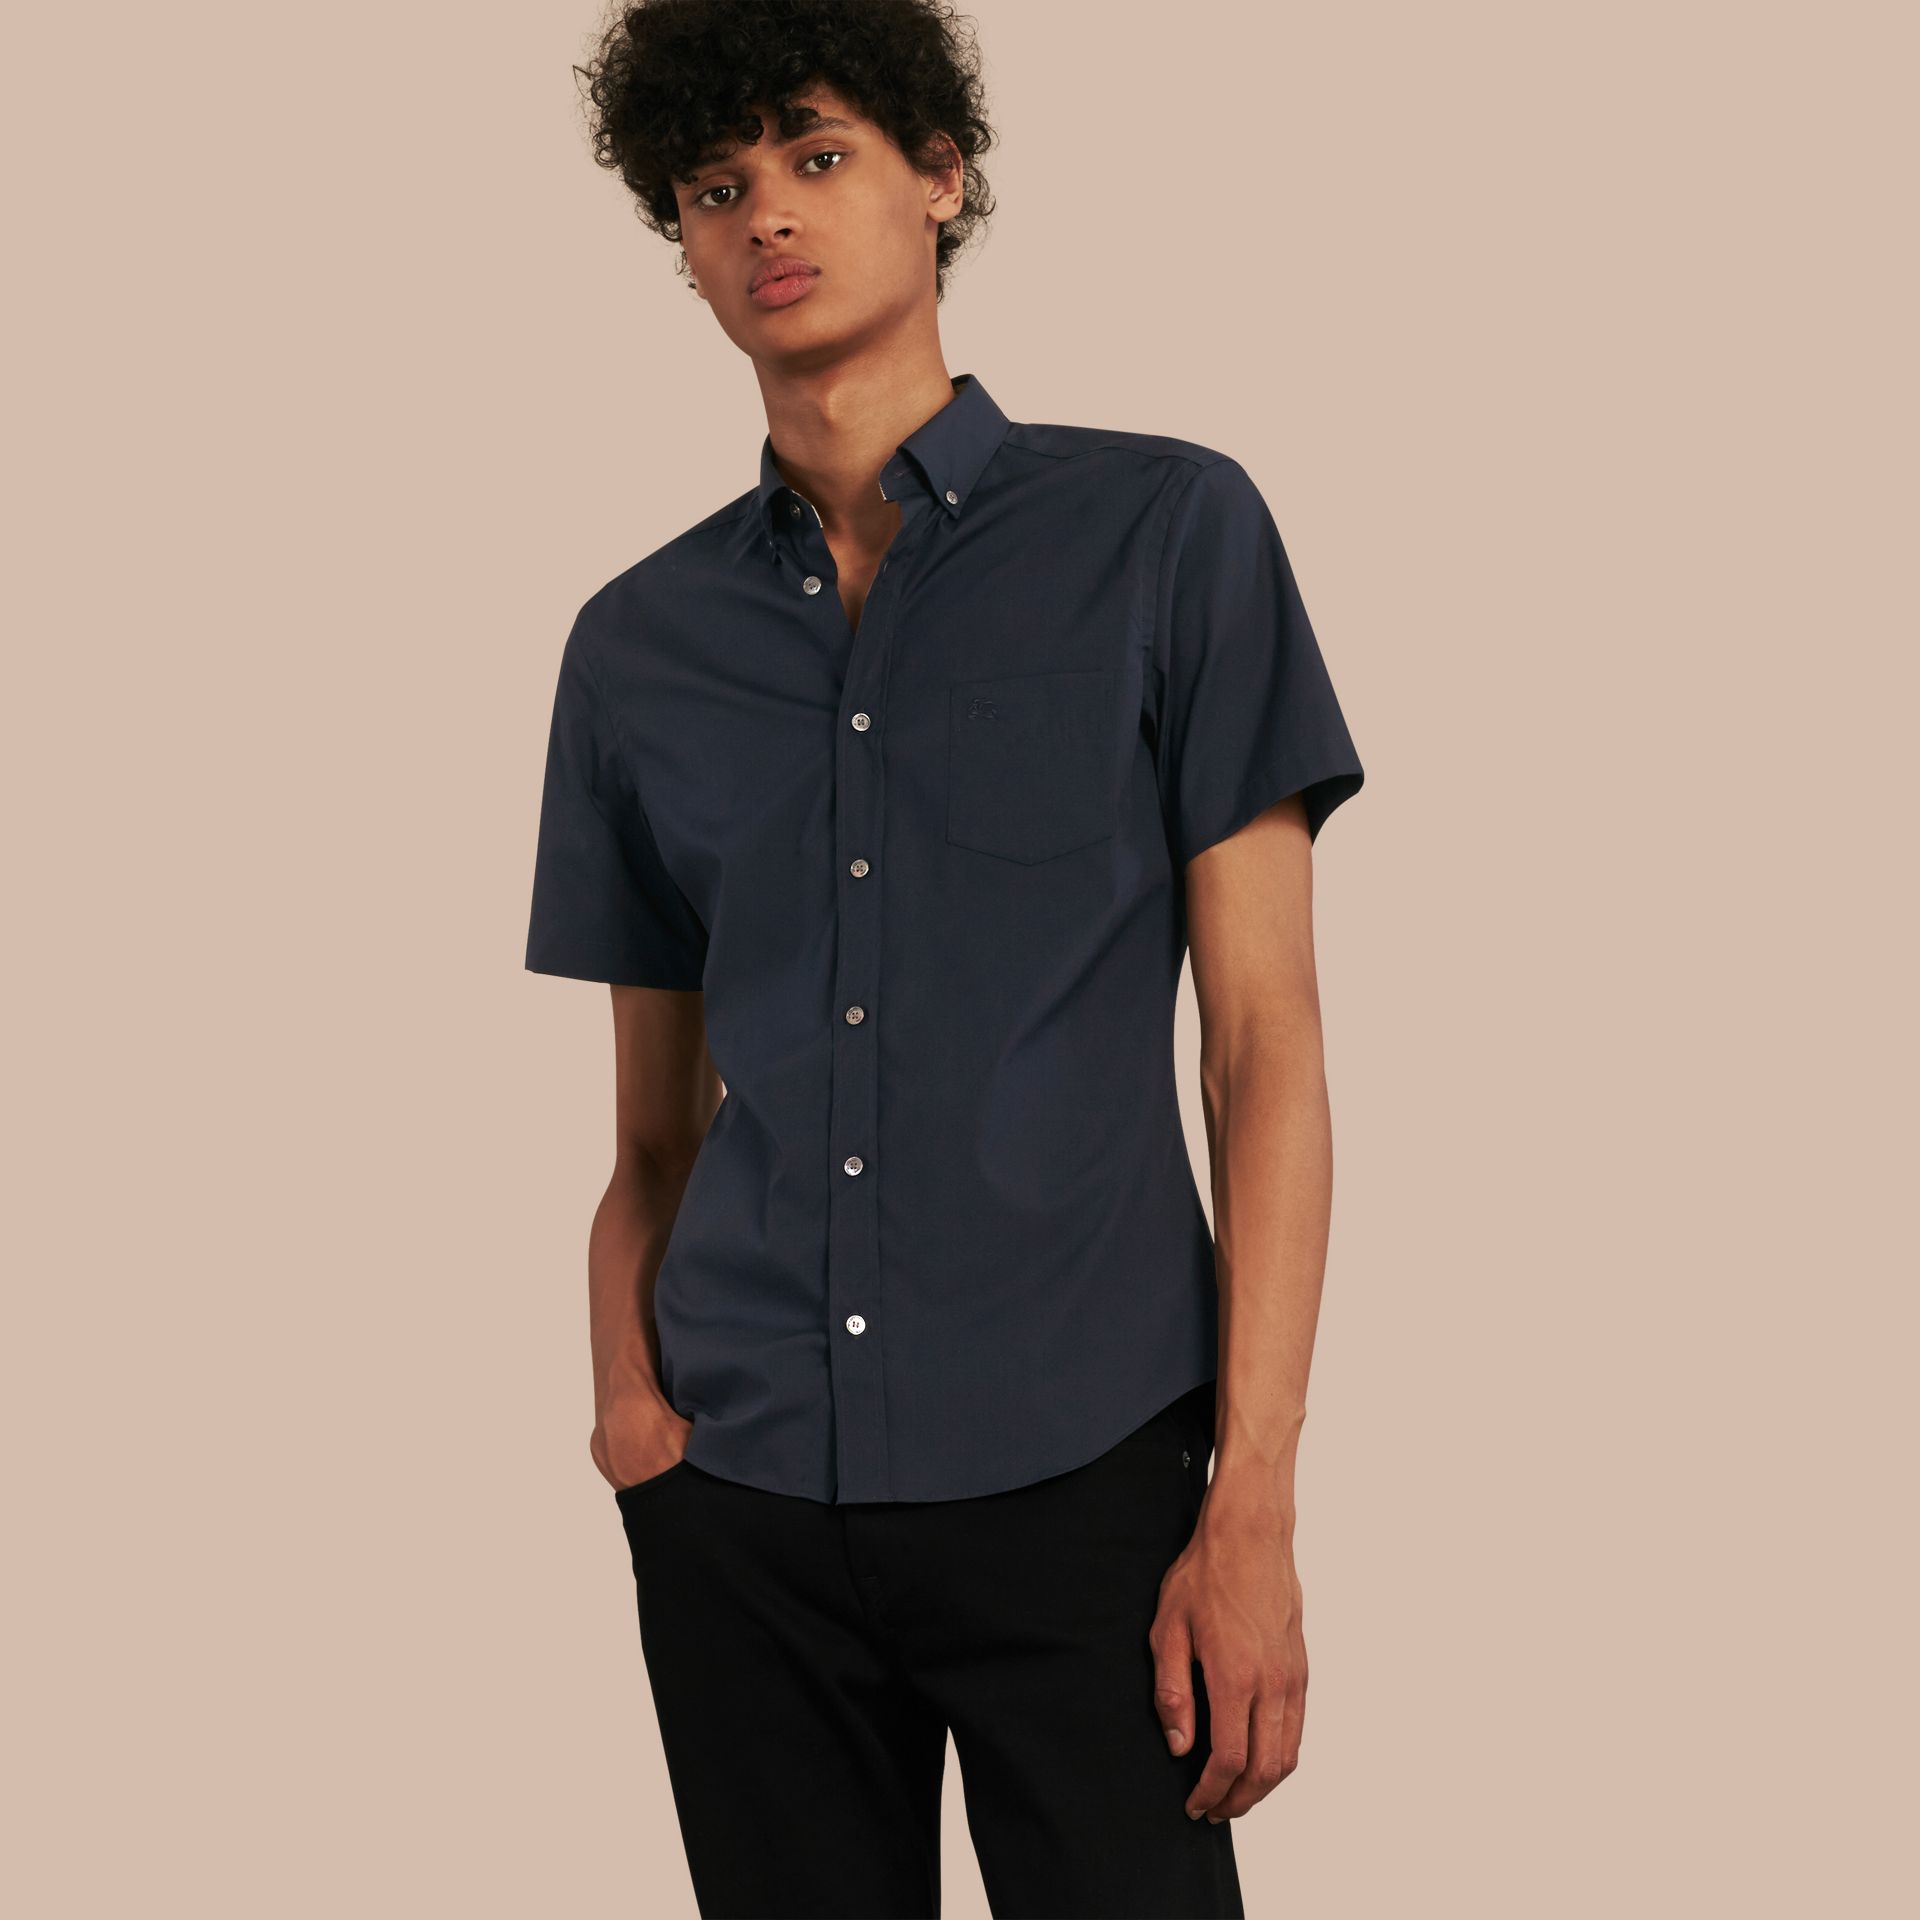 Navy Short-sleeved Stretch Cotton Poplin Shirt Navy - gallery image 1